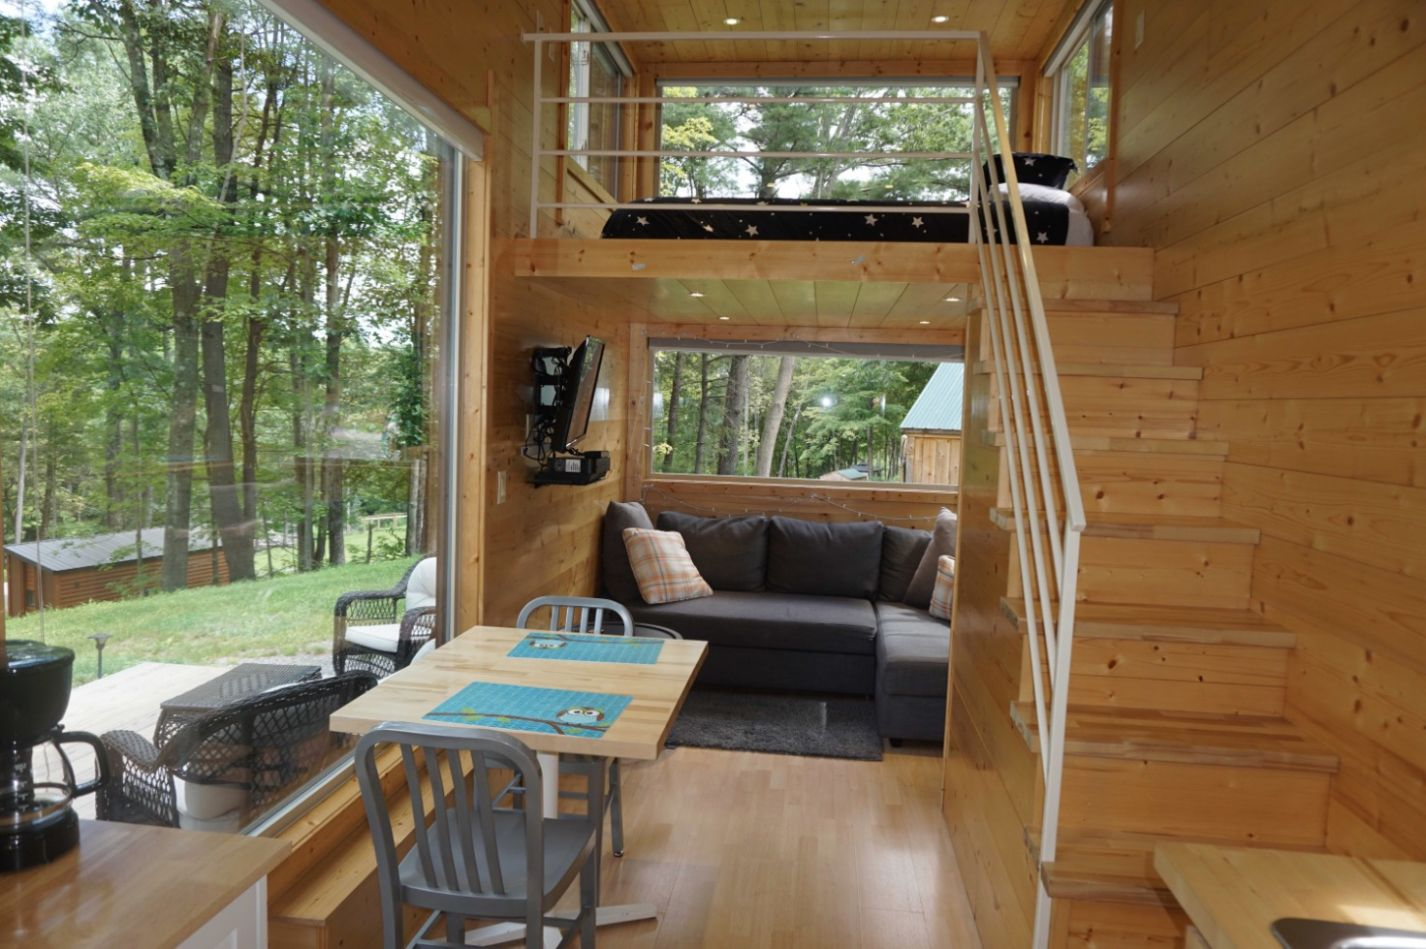 The Oki Tiny House in the Catskills Two Hours from NYC - tiny house resort